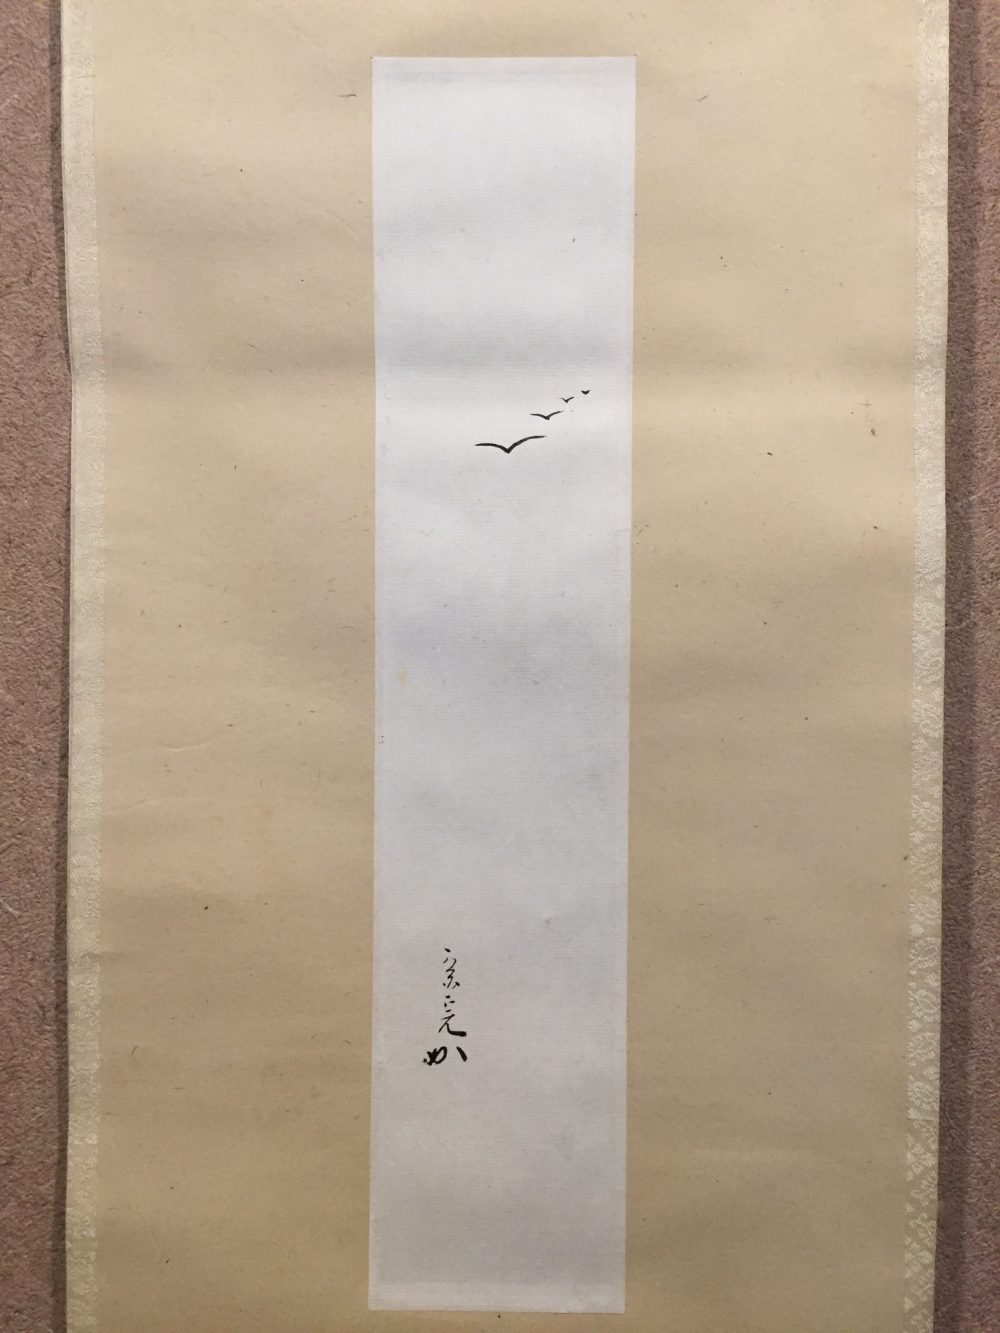 Hatsukari` [Painting of Flying Wild Geese] by Horiuchi Sokan(堀内宗完)